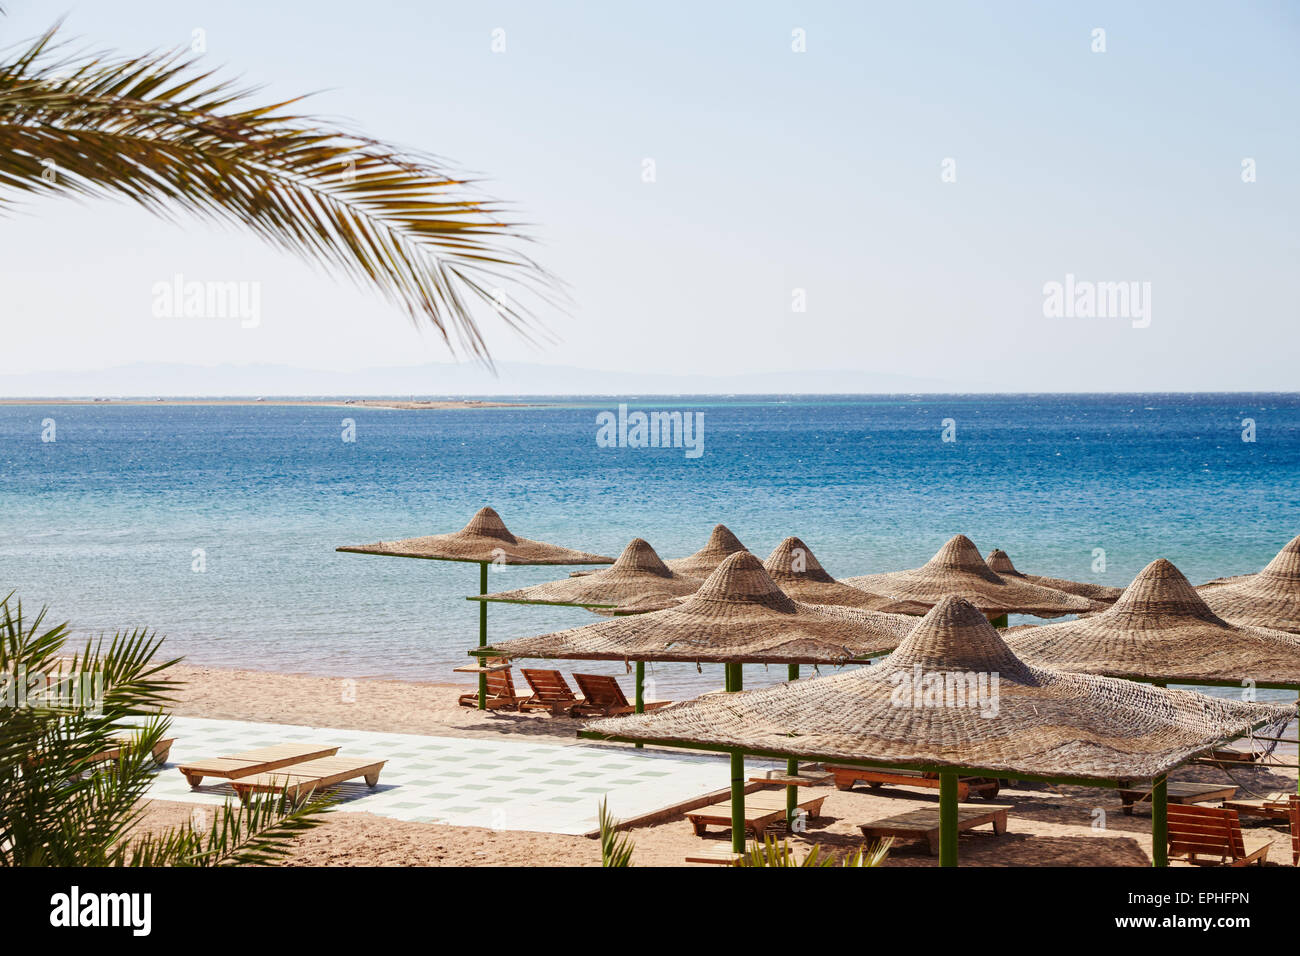 Beach, Red Sea, umbrellas, chaise lounges, branches of date palms against the blue sky, lots of sun - Stock Image